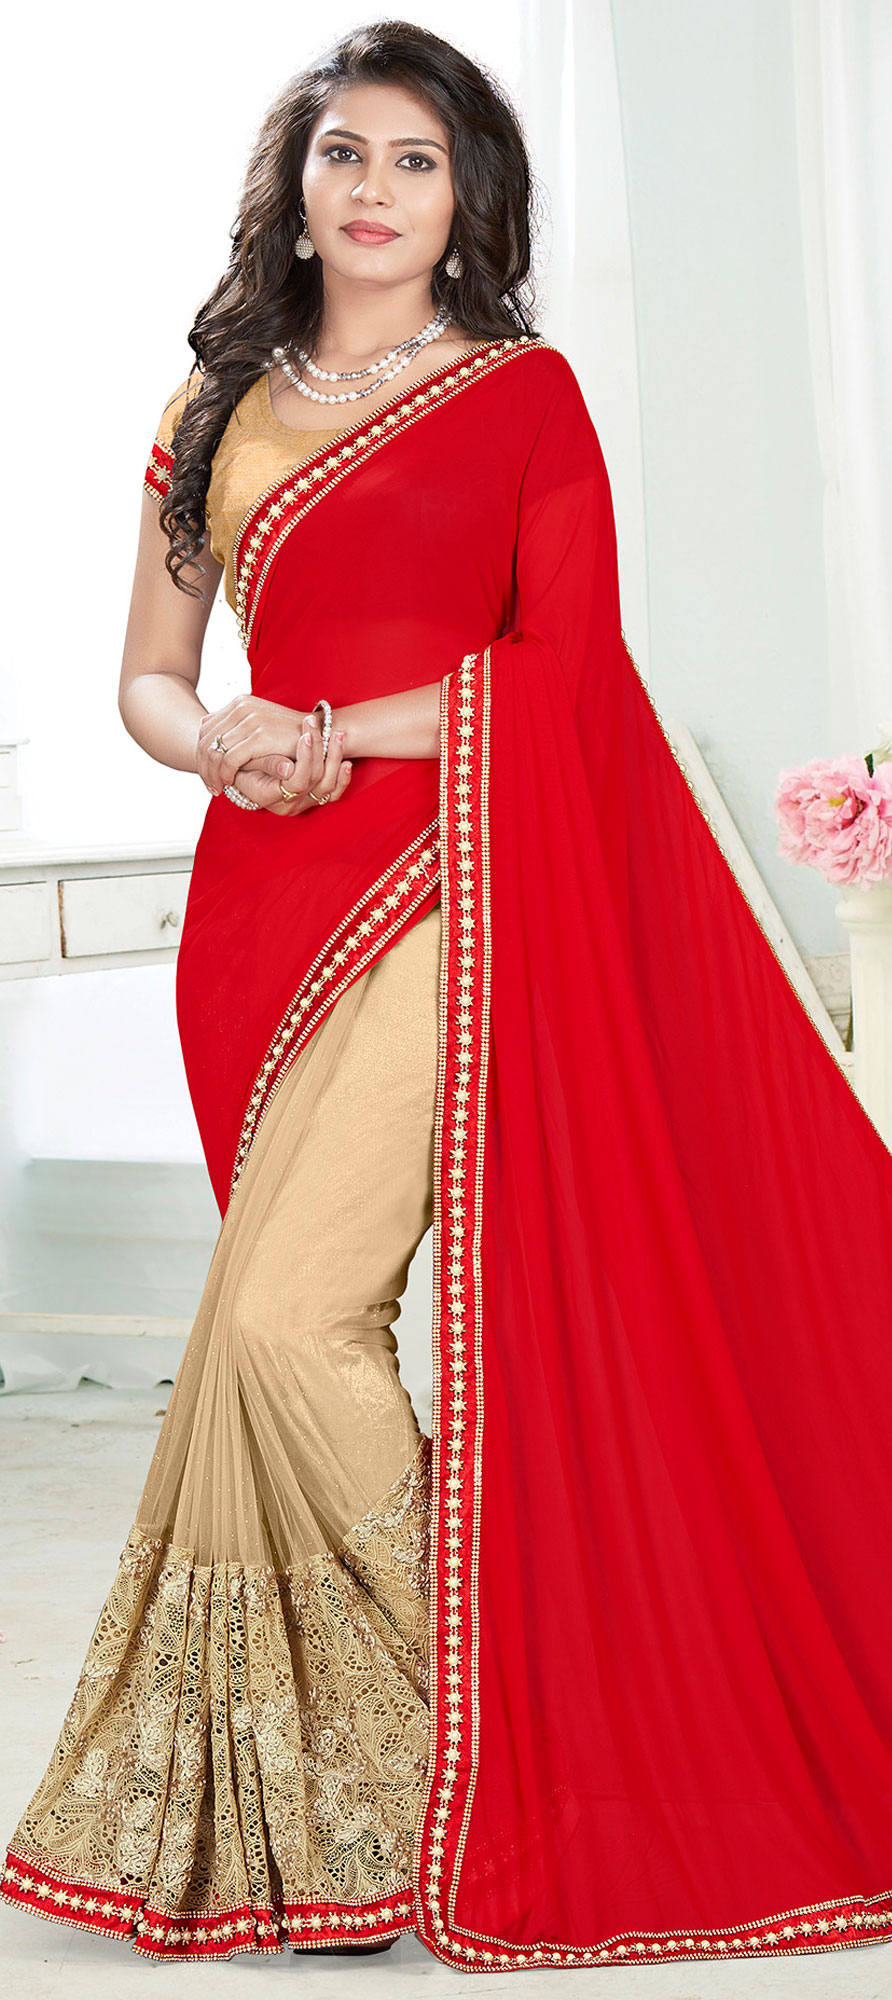 742082: Gold, Red and Maroon color family Embroidered Sarees, Party ...